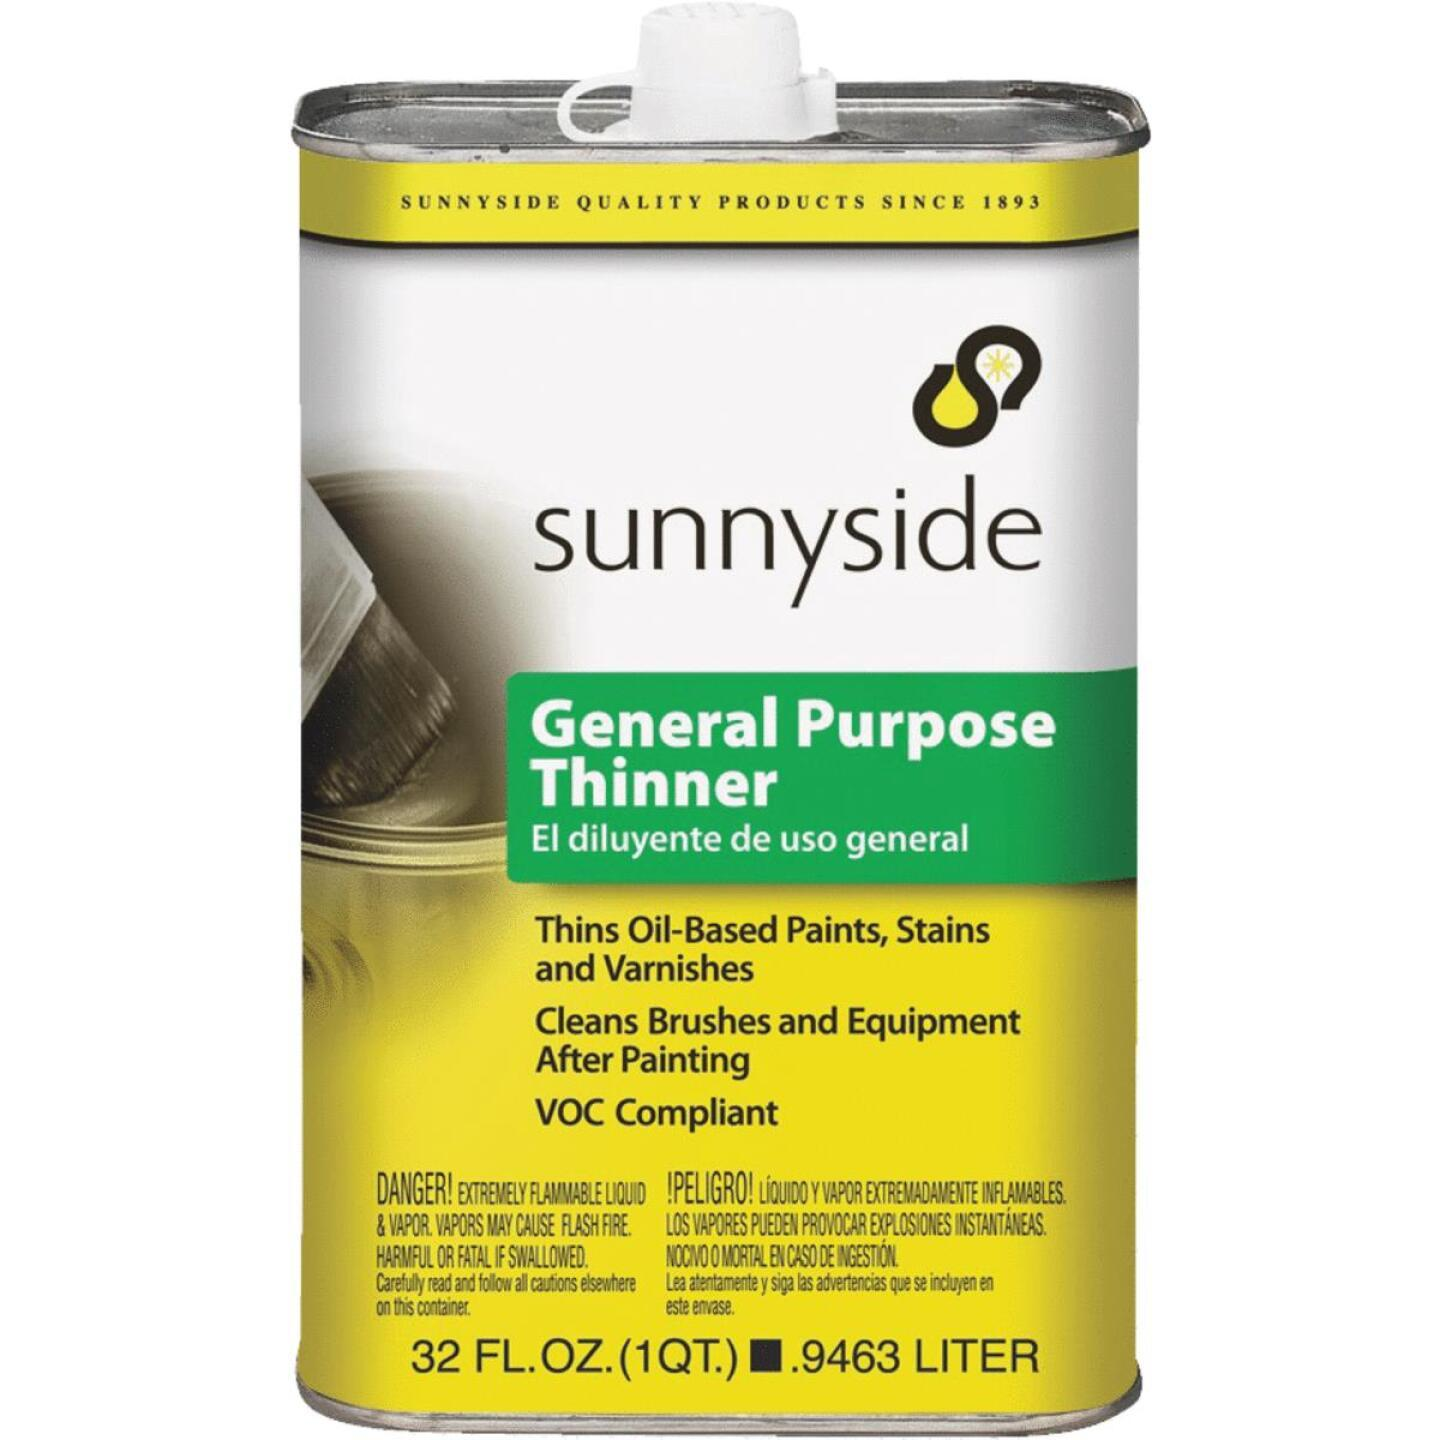 Quart of Sunnyside general purpose thinner, available at Creative Paint in San Francisco, South Bay & East Bay.